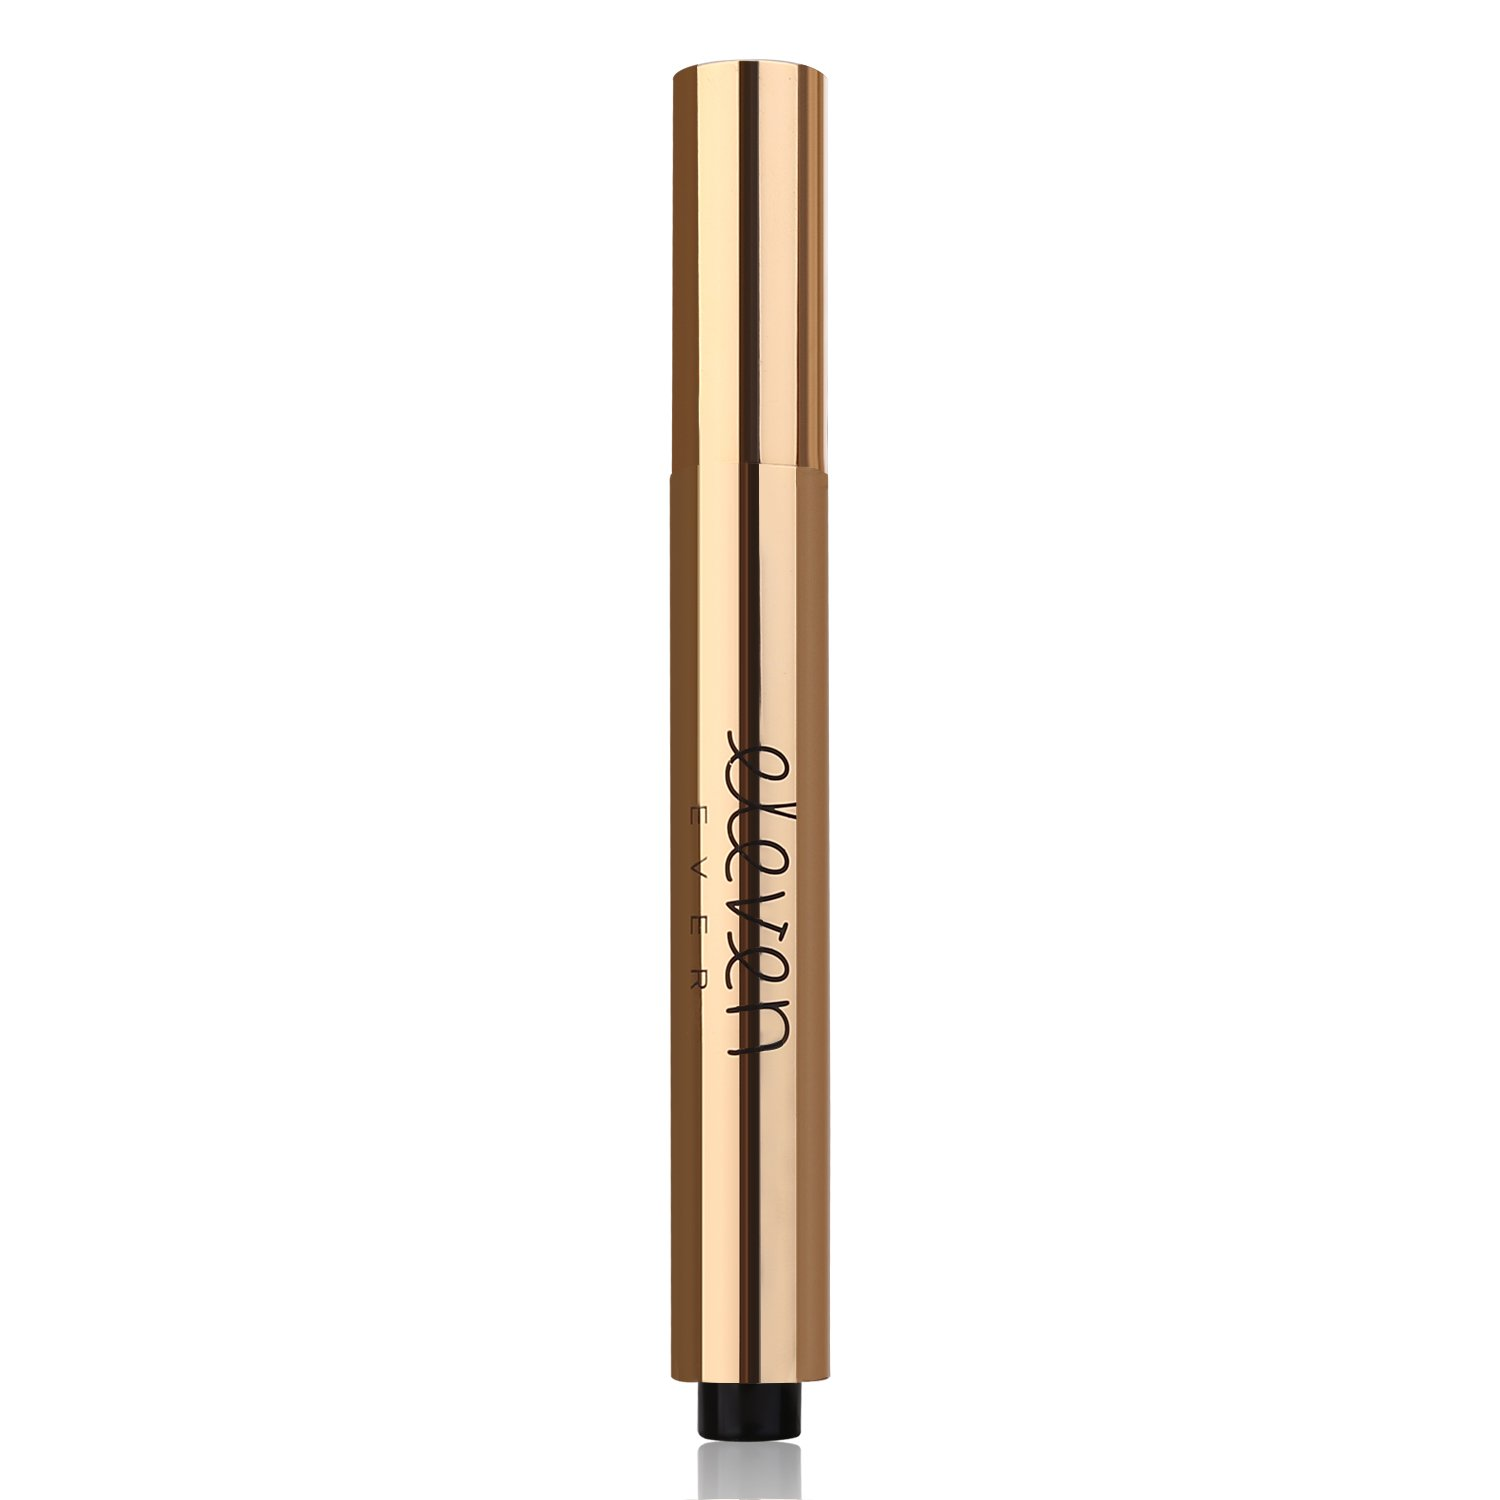 ELEVEN EVER Concealer Pen for Makeup brighten and Perfect Cover Pores Dark Circles Touch Concealer, 0.6 Ounce #2